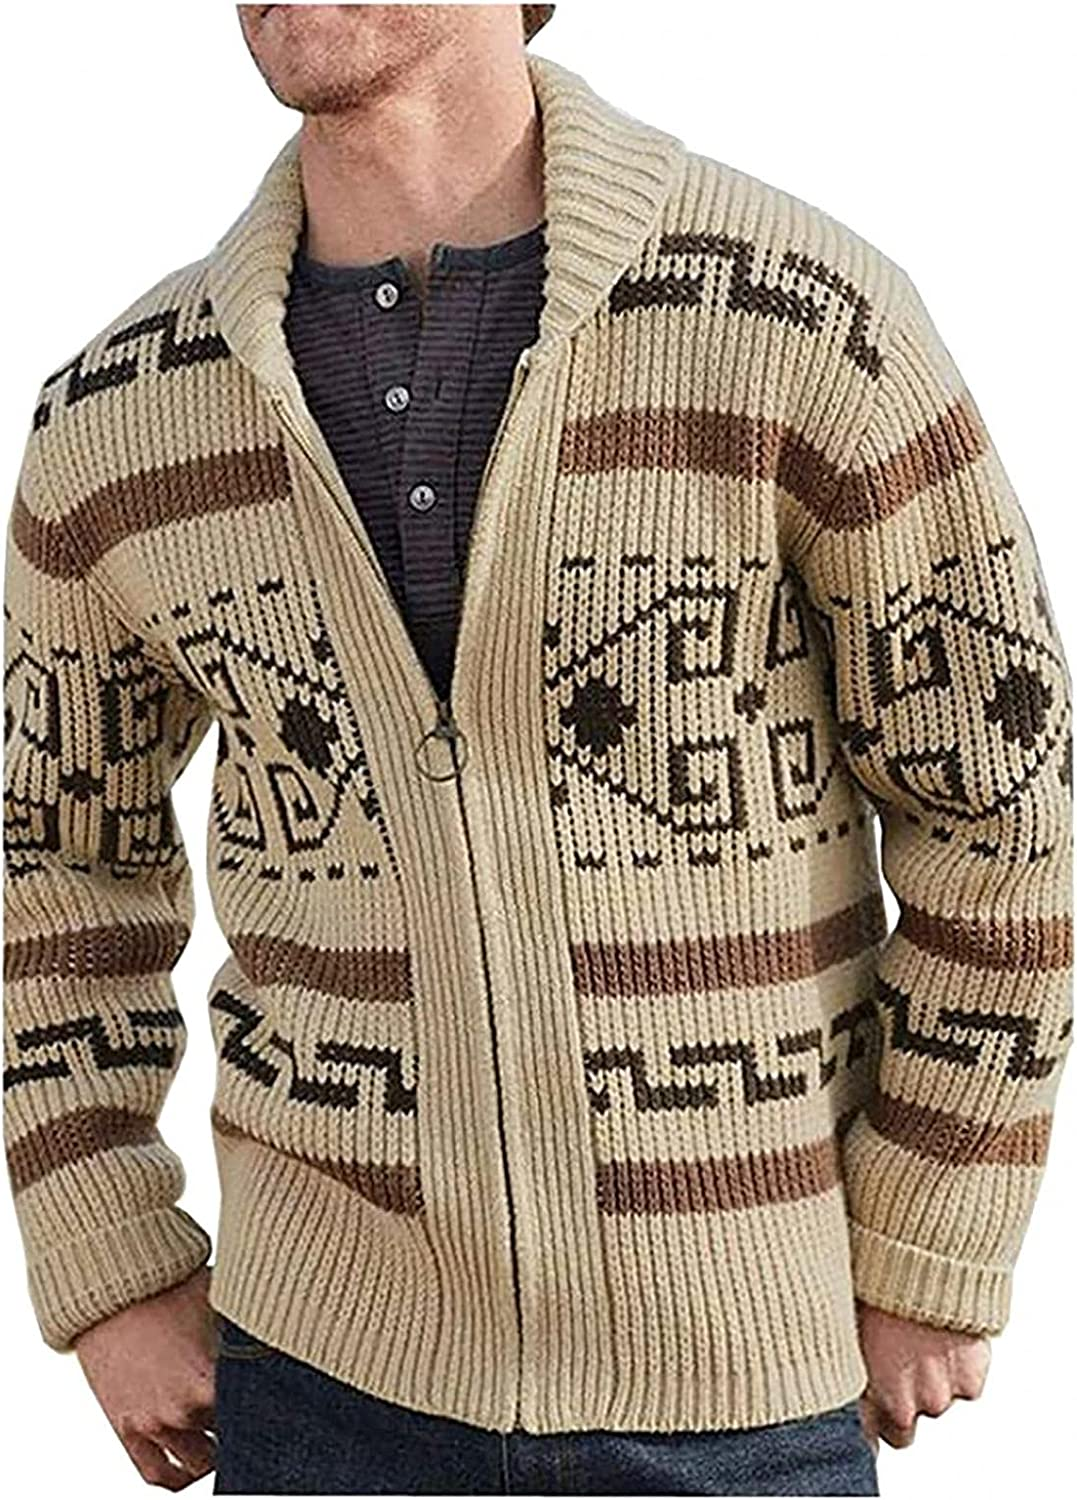 POHOK Mens Knitted Cardigan Sweater Stand Collar Long Sleeve Zip Up Thick Warm Coat Stripes Casual Slim Fit Jacket Outerwear